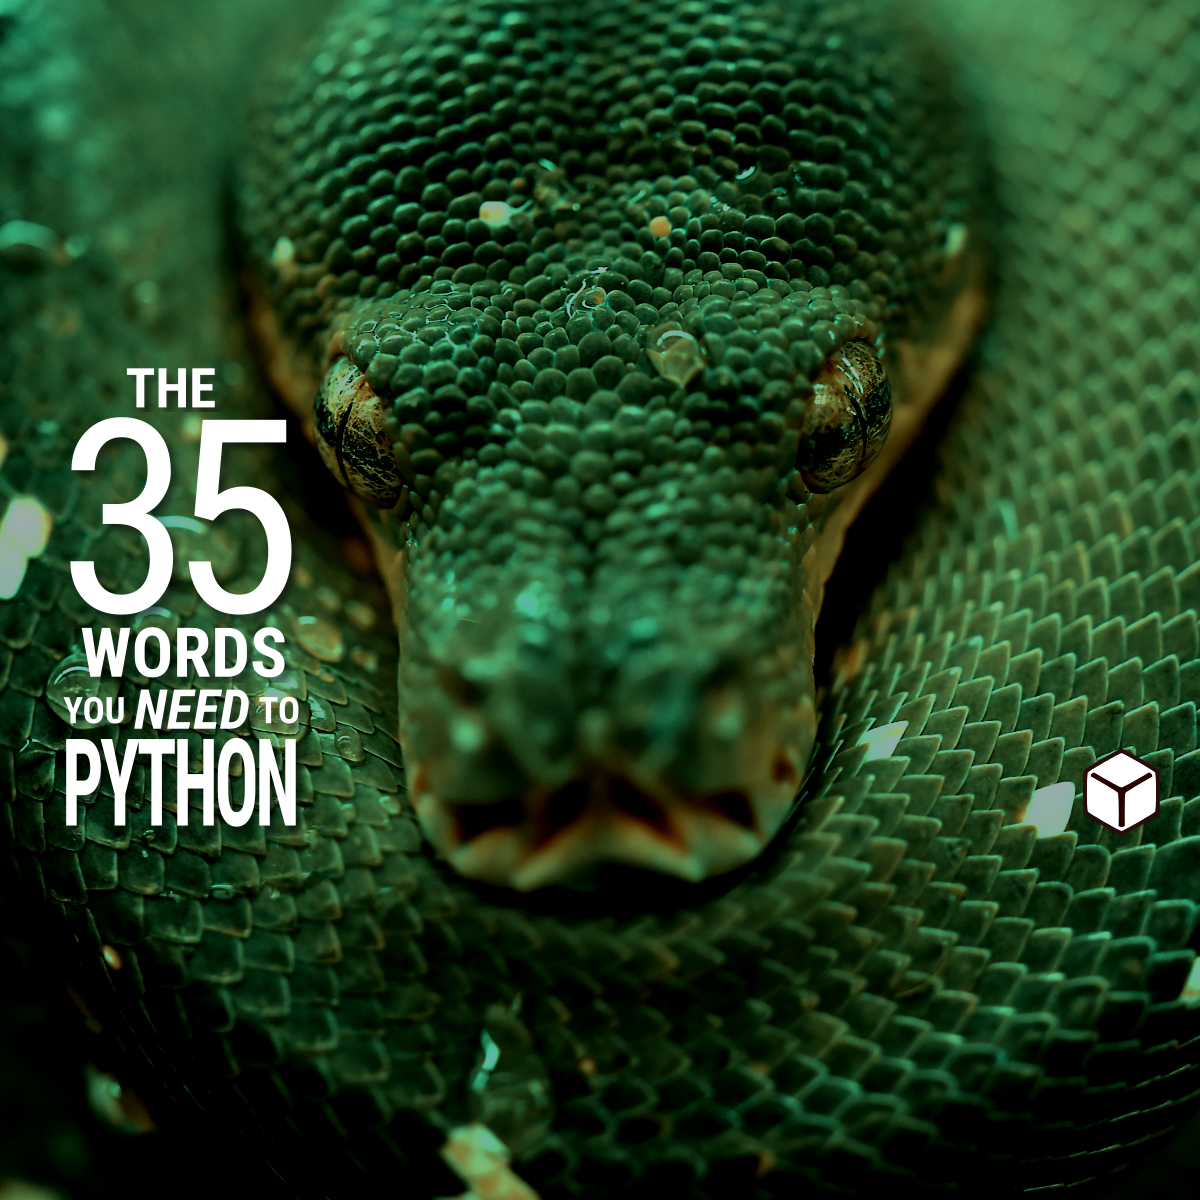 The 35 Words You Need to Python | yawpitchroll